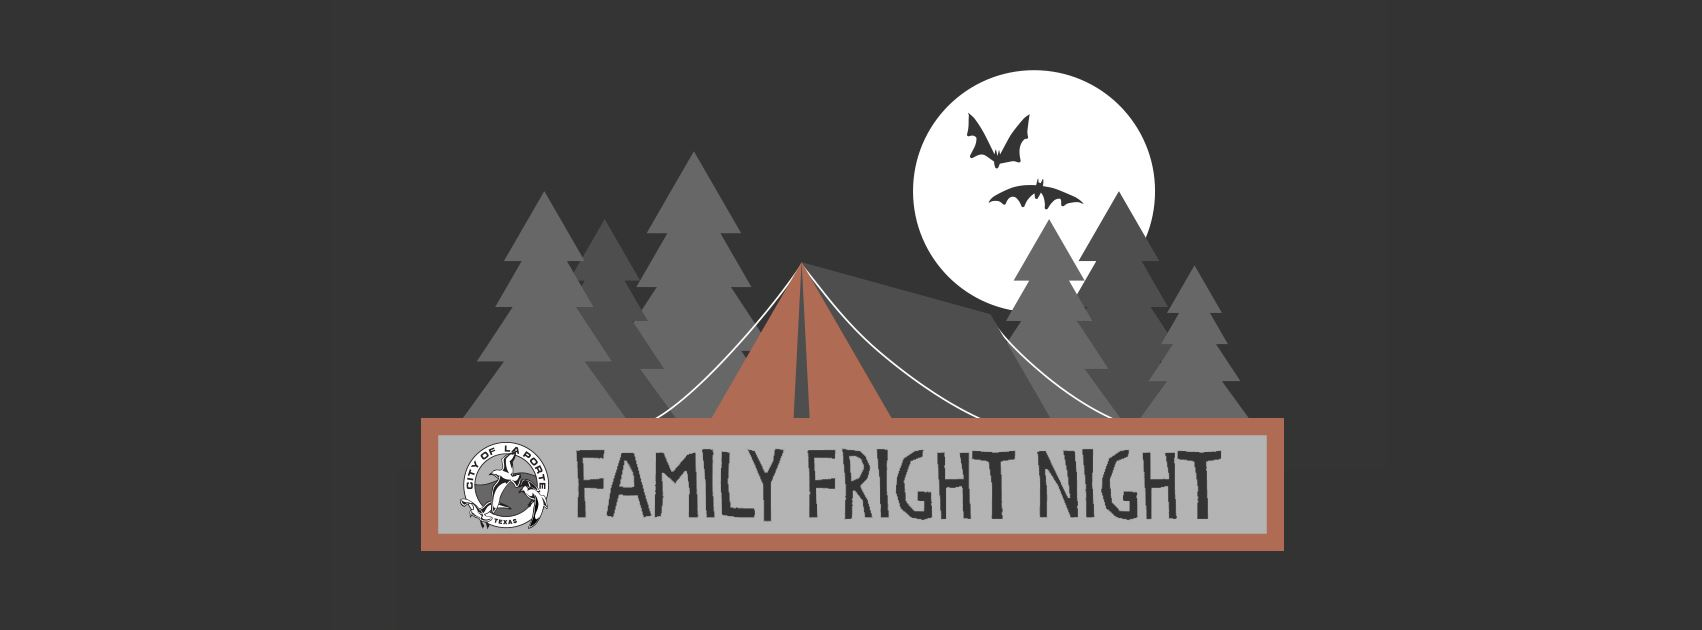 Family Fright Night FB Banner